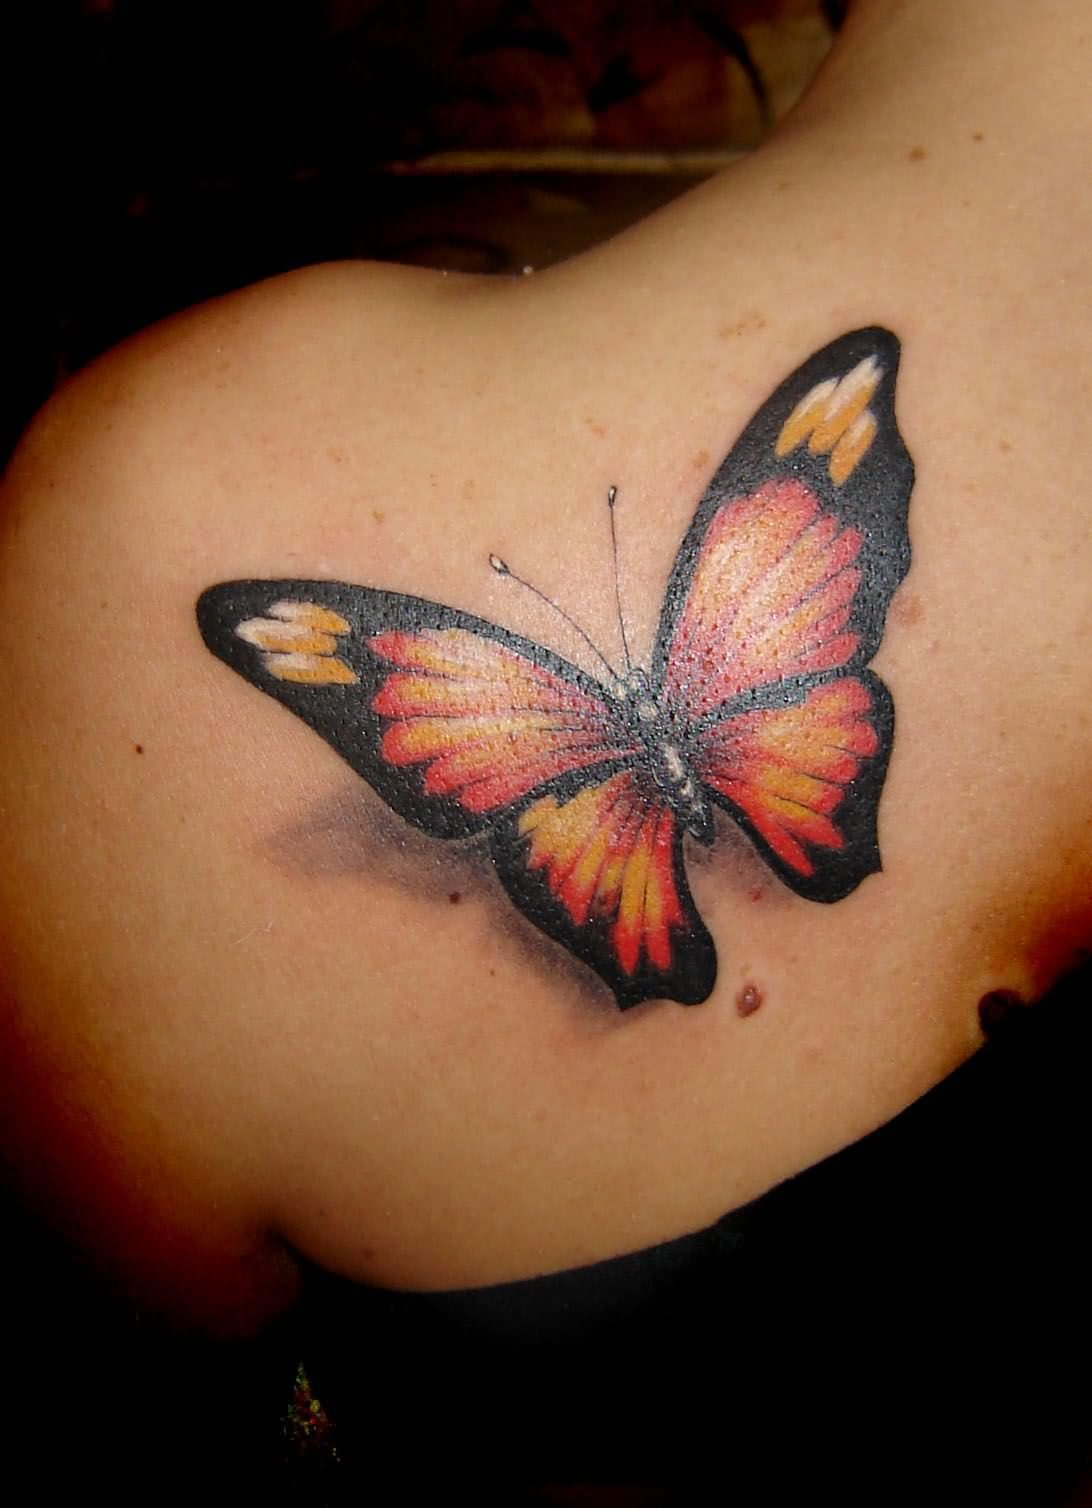 20 Inspiring 3D Tattoos On Back Shoulder Ideas And Designs